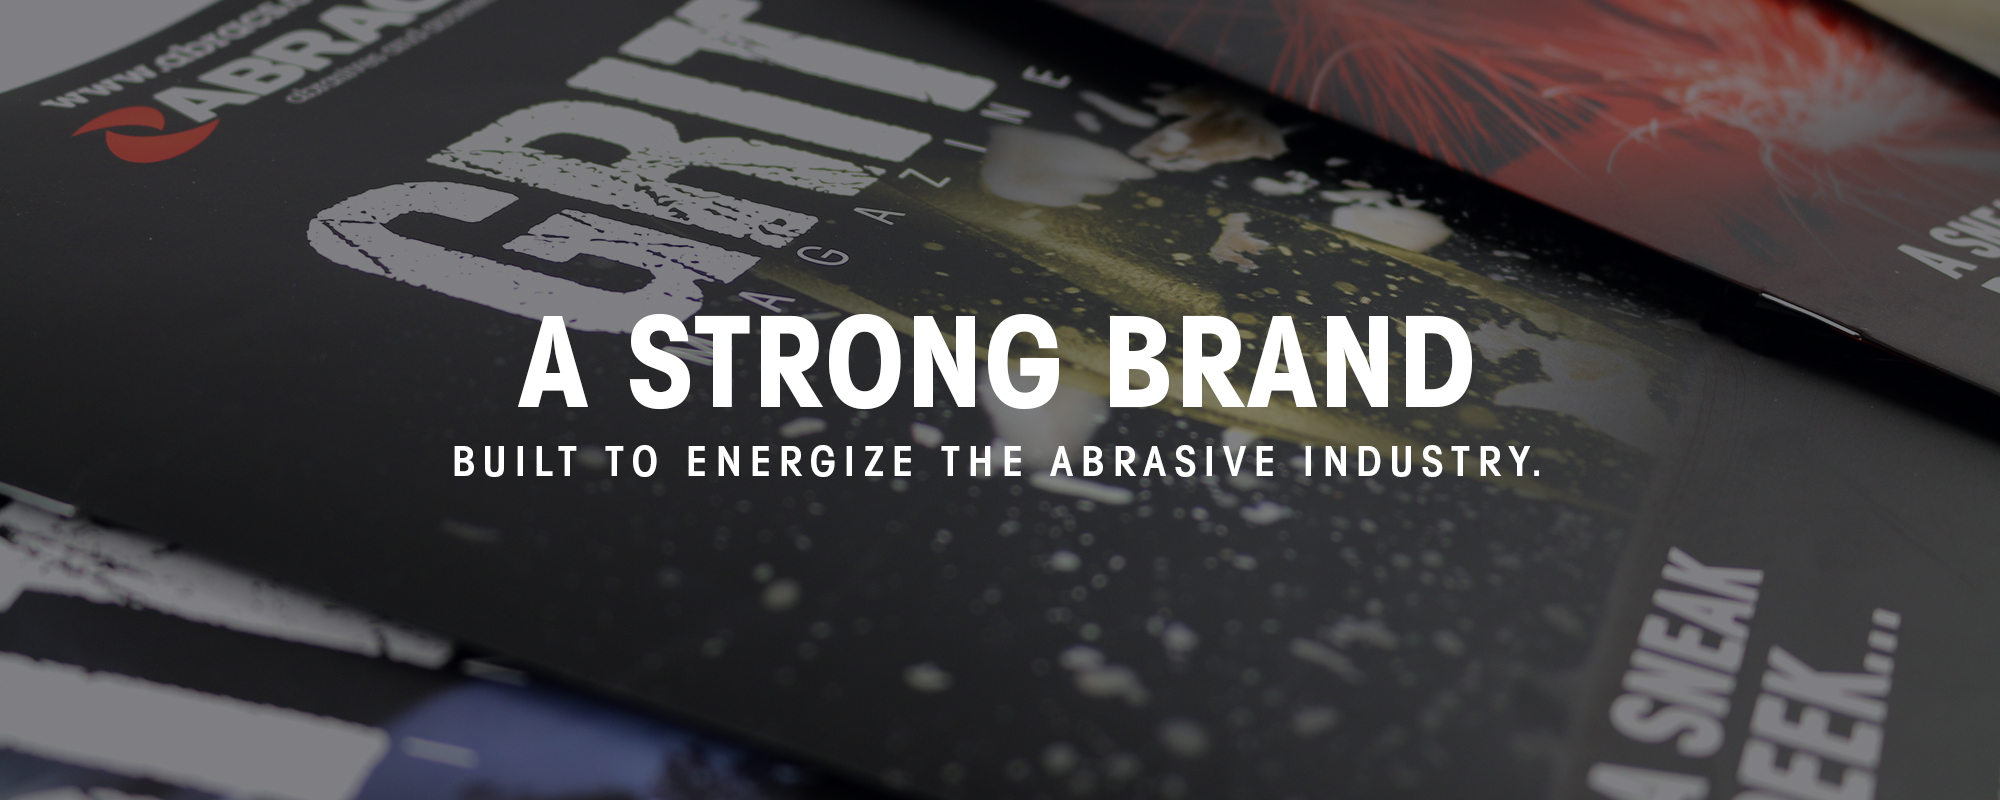 A Strong Brand built to energise the abrasives industry